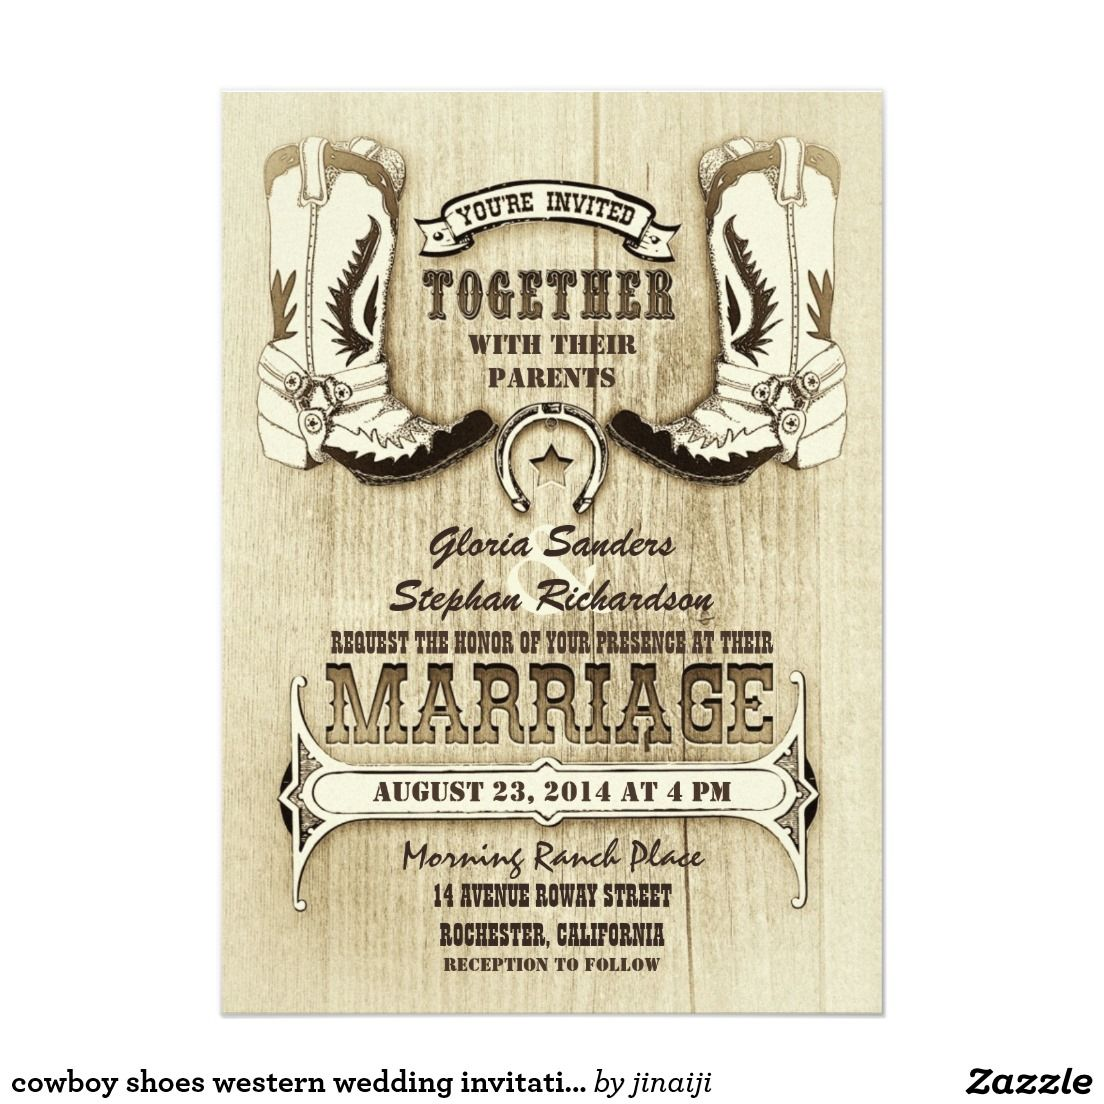 Cowboy shoes western wedding invitations | Pinterest | Weddings and ...